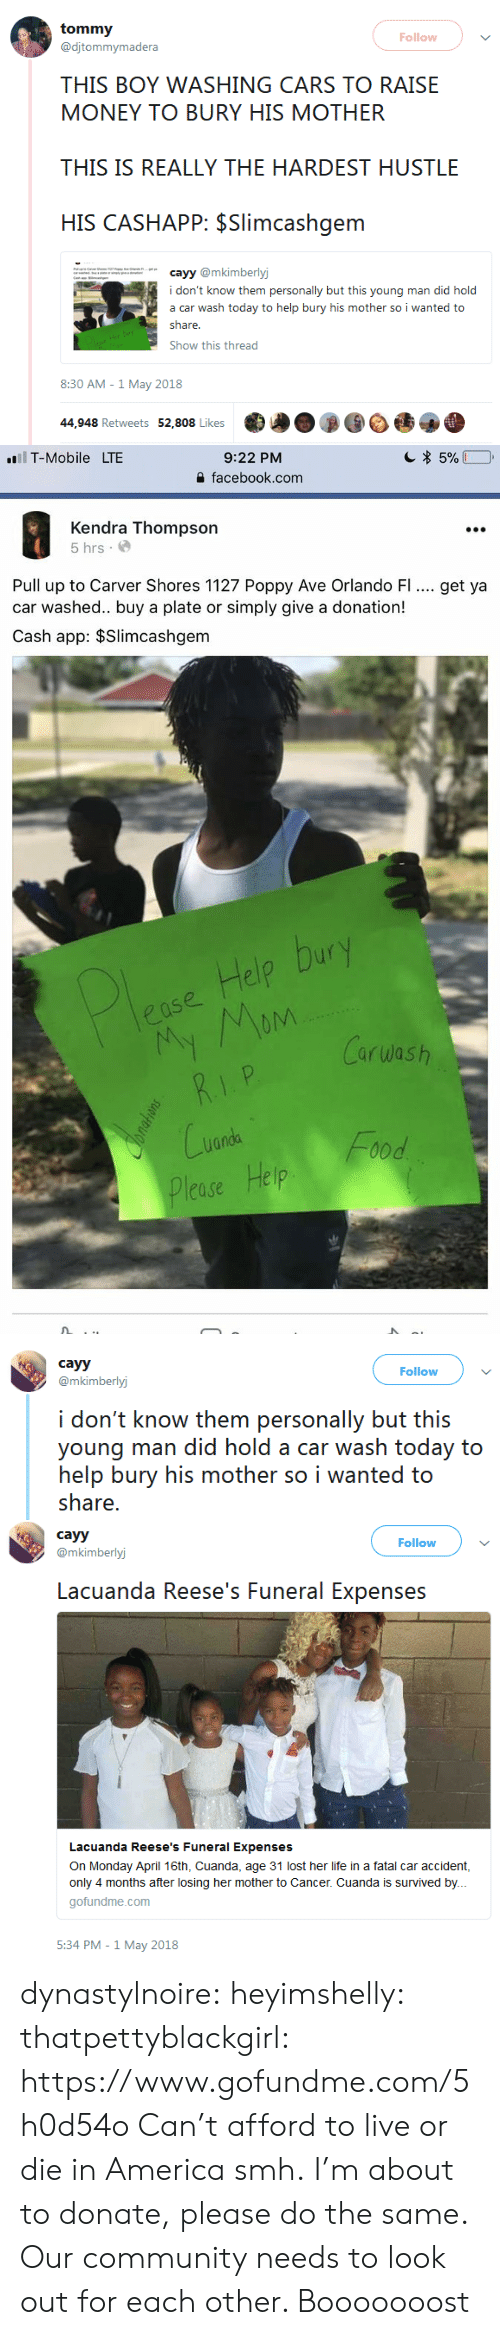 America, Cars, and Community: Follow  @djtommymadera  THIS BOY WASHING CARS TO RAISE  MONEY TO BURY HIS MOTHER  THIS IS REALLY THE HARDEST HUSTLE  HIS CASHAPP: $Slimcashgem  cayy @mkimberly  i don't know them personally but this young man did hold  a car wash today to help bury his mother so i wanted to  estrae  Show this thread  8:30 AM -1 May 2018  44,948 Retweets 52,808 Likes   9:22 PM  을 facebook.com  1T-Mobile  LTE  Kendra Thompson  5 hrs.  Pull up to Carver Shores 1127 Poppy Ave Orlando FI.. get ya  car washed.. buy a plate or simply give a donation!  Cash app: $Slimcashgem  elo  Carwash  nda  lease Help   cayy  @mkimberlyj  Follow  i don't know them personally but this  young man did hold a car wash today to  help bury his mother so i wanted to  share.   cayy  @mkimberlyj  Follow  Lacuanda Reese's Funeral Expenses  Lacuanda Reese's Funeral Expenses  On Monday April 16th, Cuanda, age 31 lost her life in a fatal car accident,  only 4 months after losing her mother to Cancer. Cuanda is survived by.  gofundme.com  5:34 PM -1 May 2018 dynastylnoire: heyimshelly:  thatpettyblackgirl:  https://www.gofundme.com/5h0d54o  Can't afford to live or die in America smh.     I'm about to donate, please do the same. Our community needs to look out for each other.    Booooooost